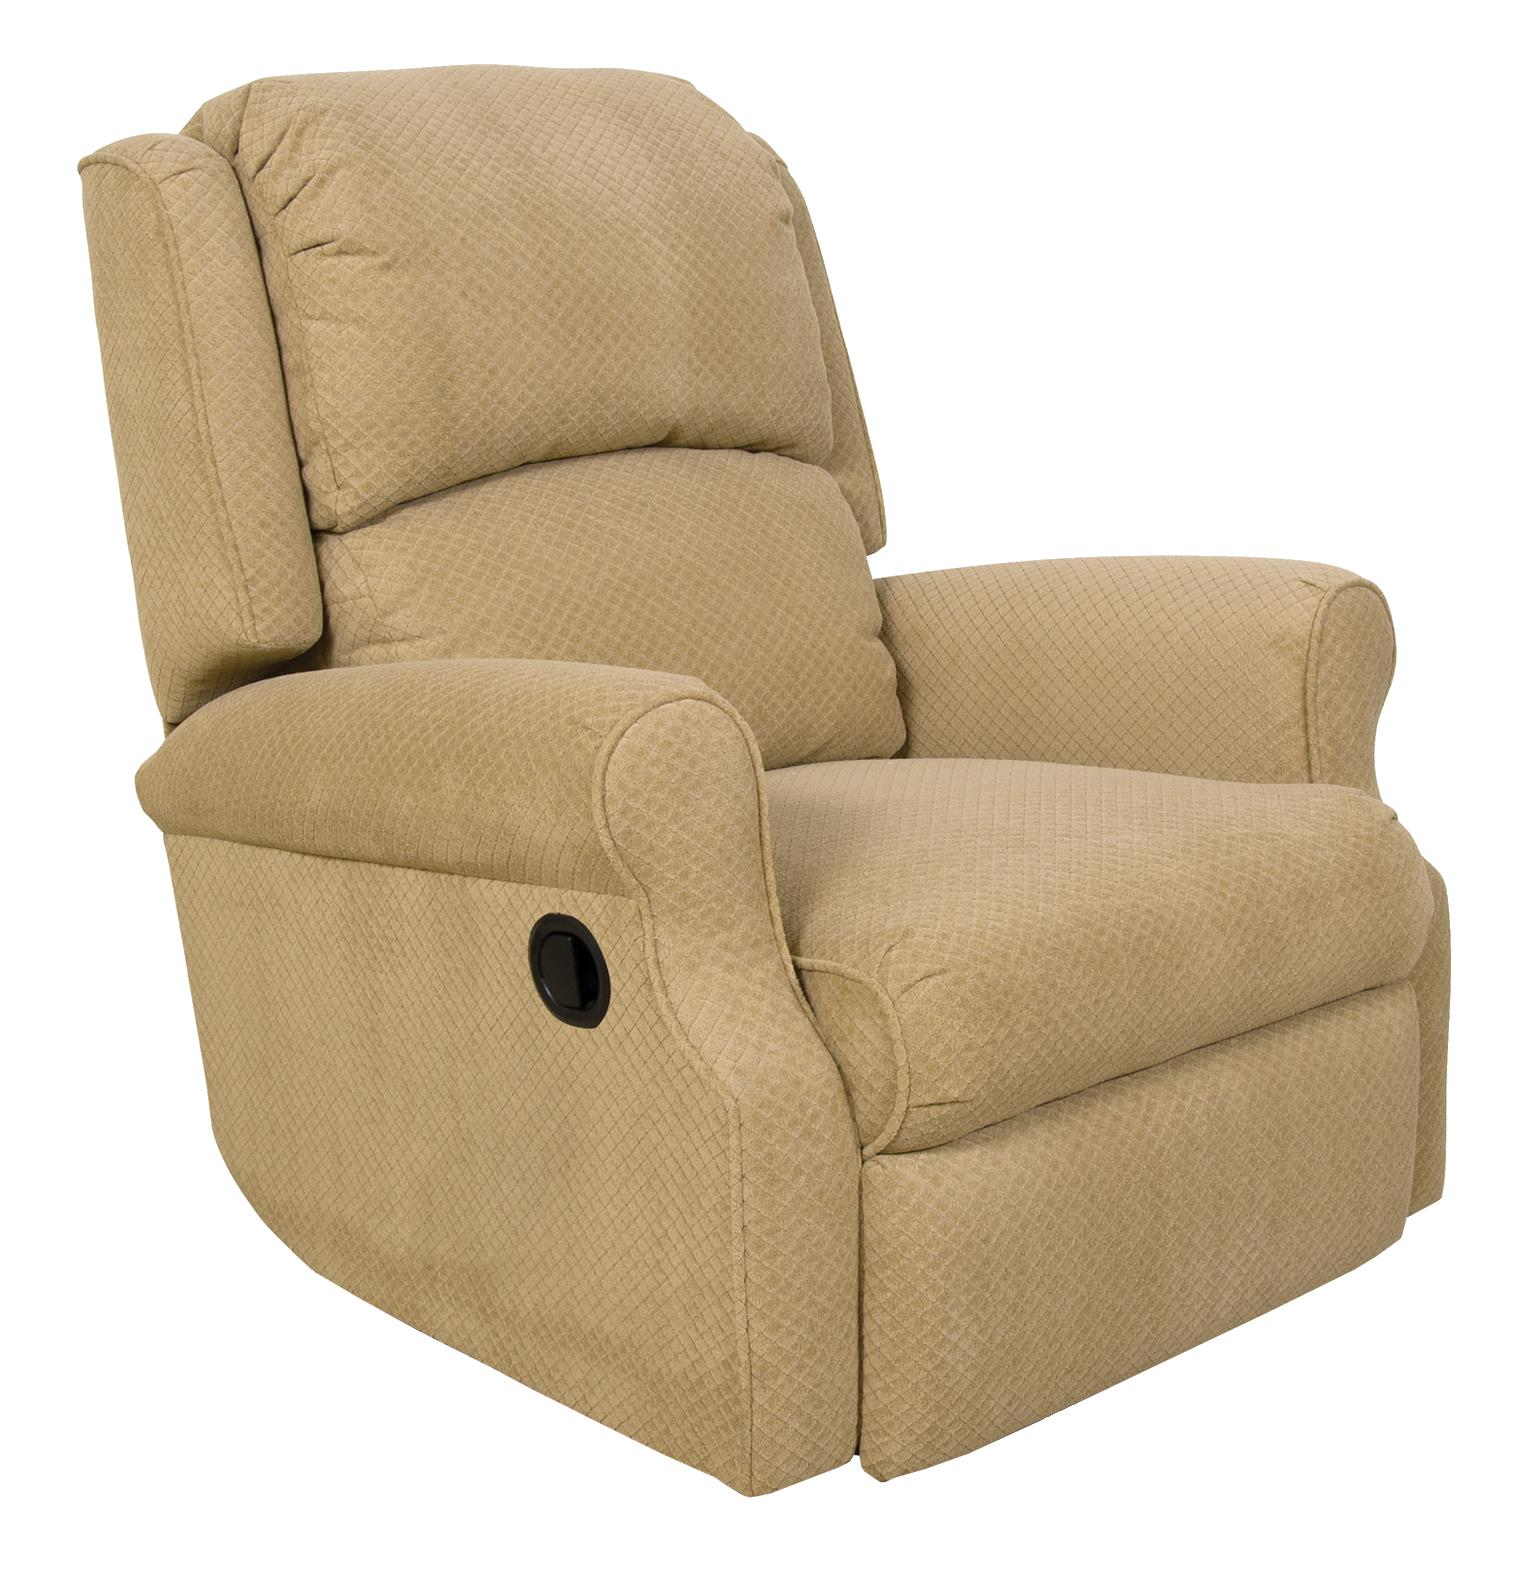 Marybeth Minimum Proximity Recliner by England at Rooms for Less